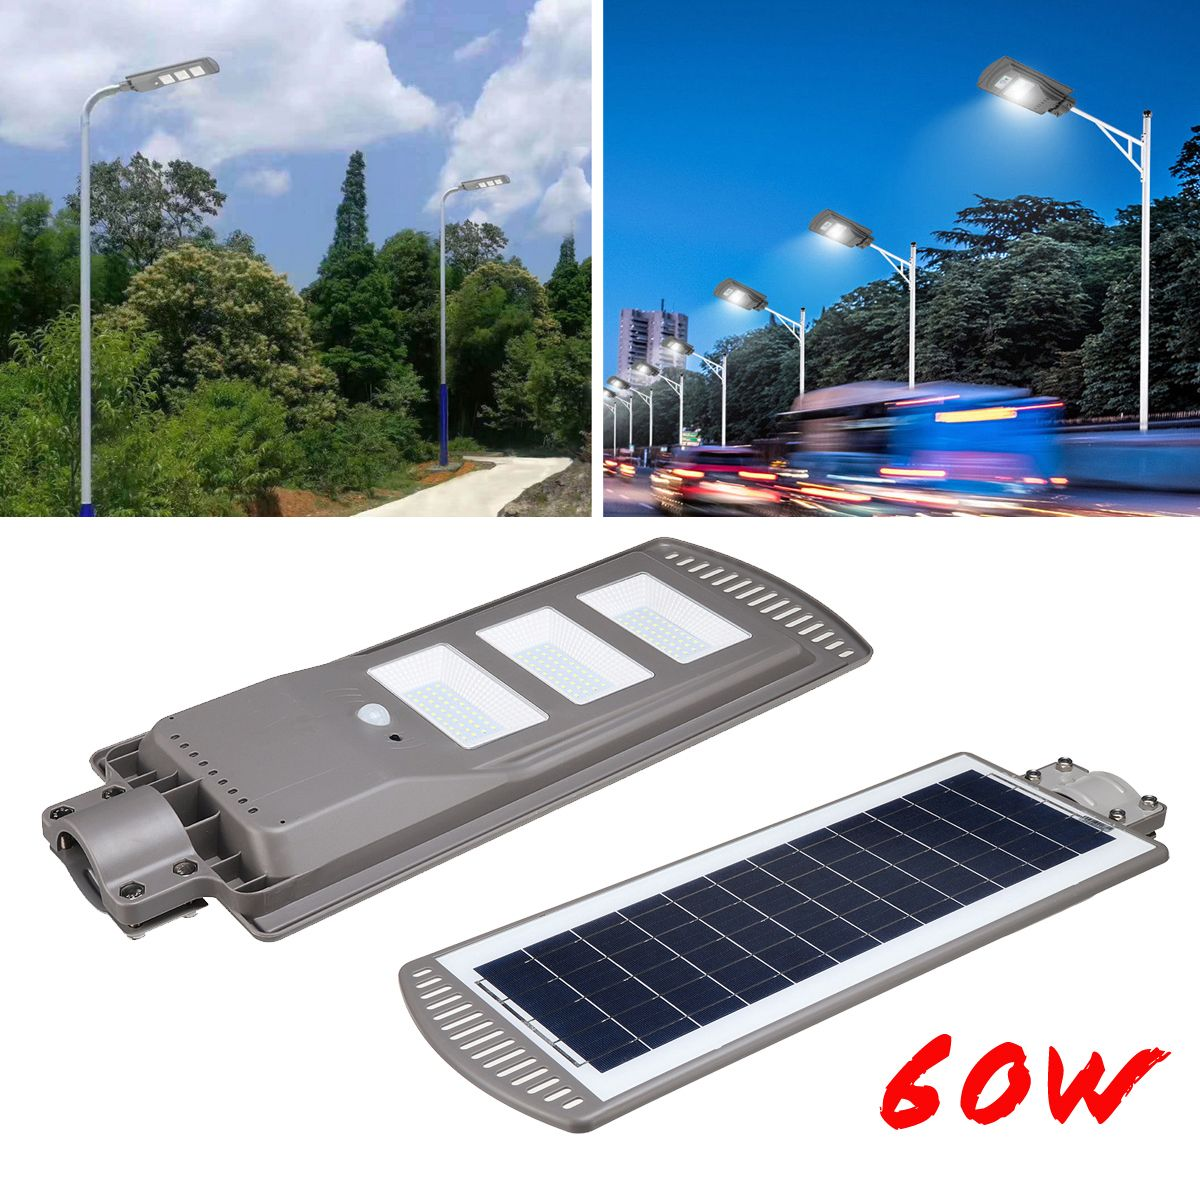 1PC 60W Solar Powered Panel LED Solar Street Light All-in-1 Time Switch Waterproof IP67 Wall Lighting Lamp for Outdoor Garden